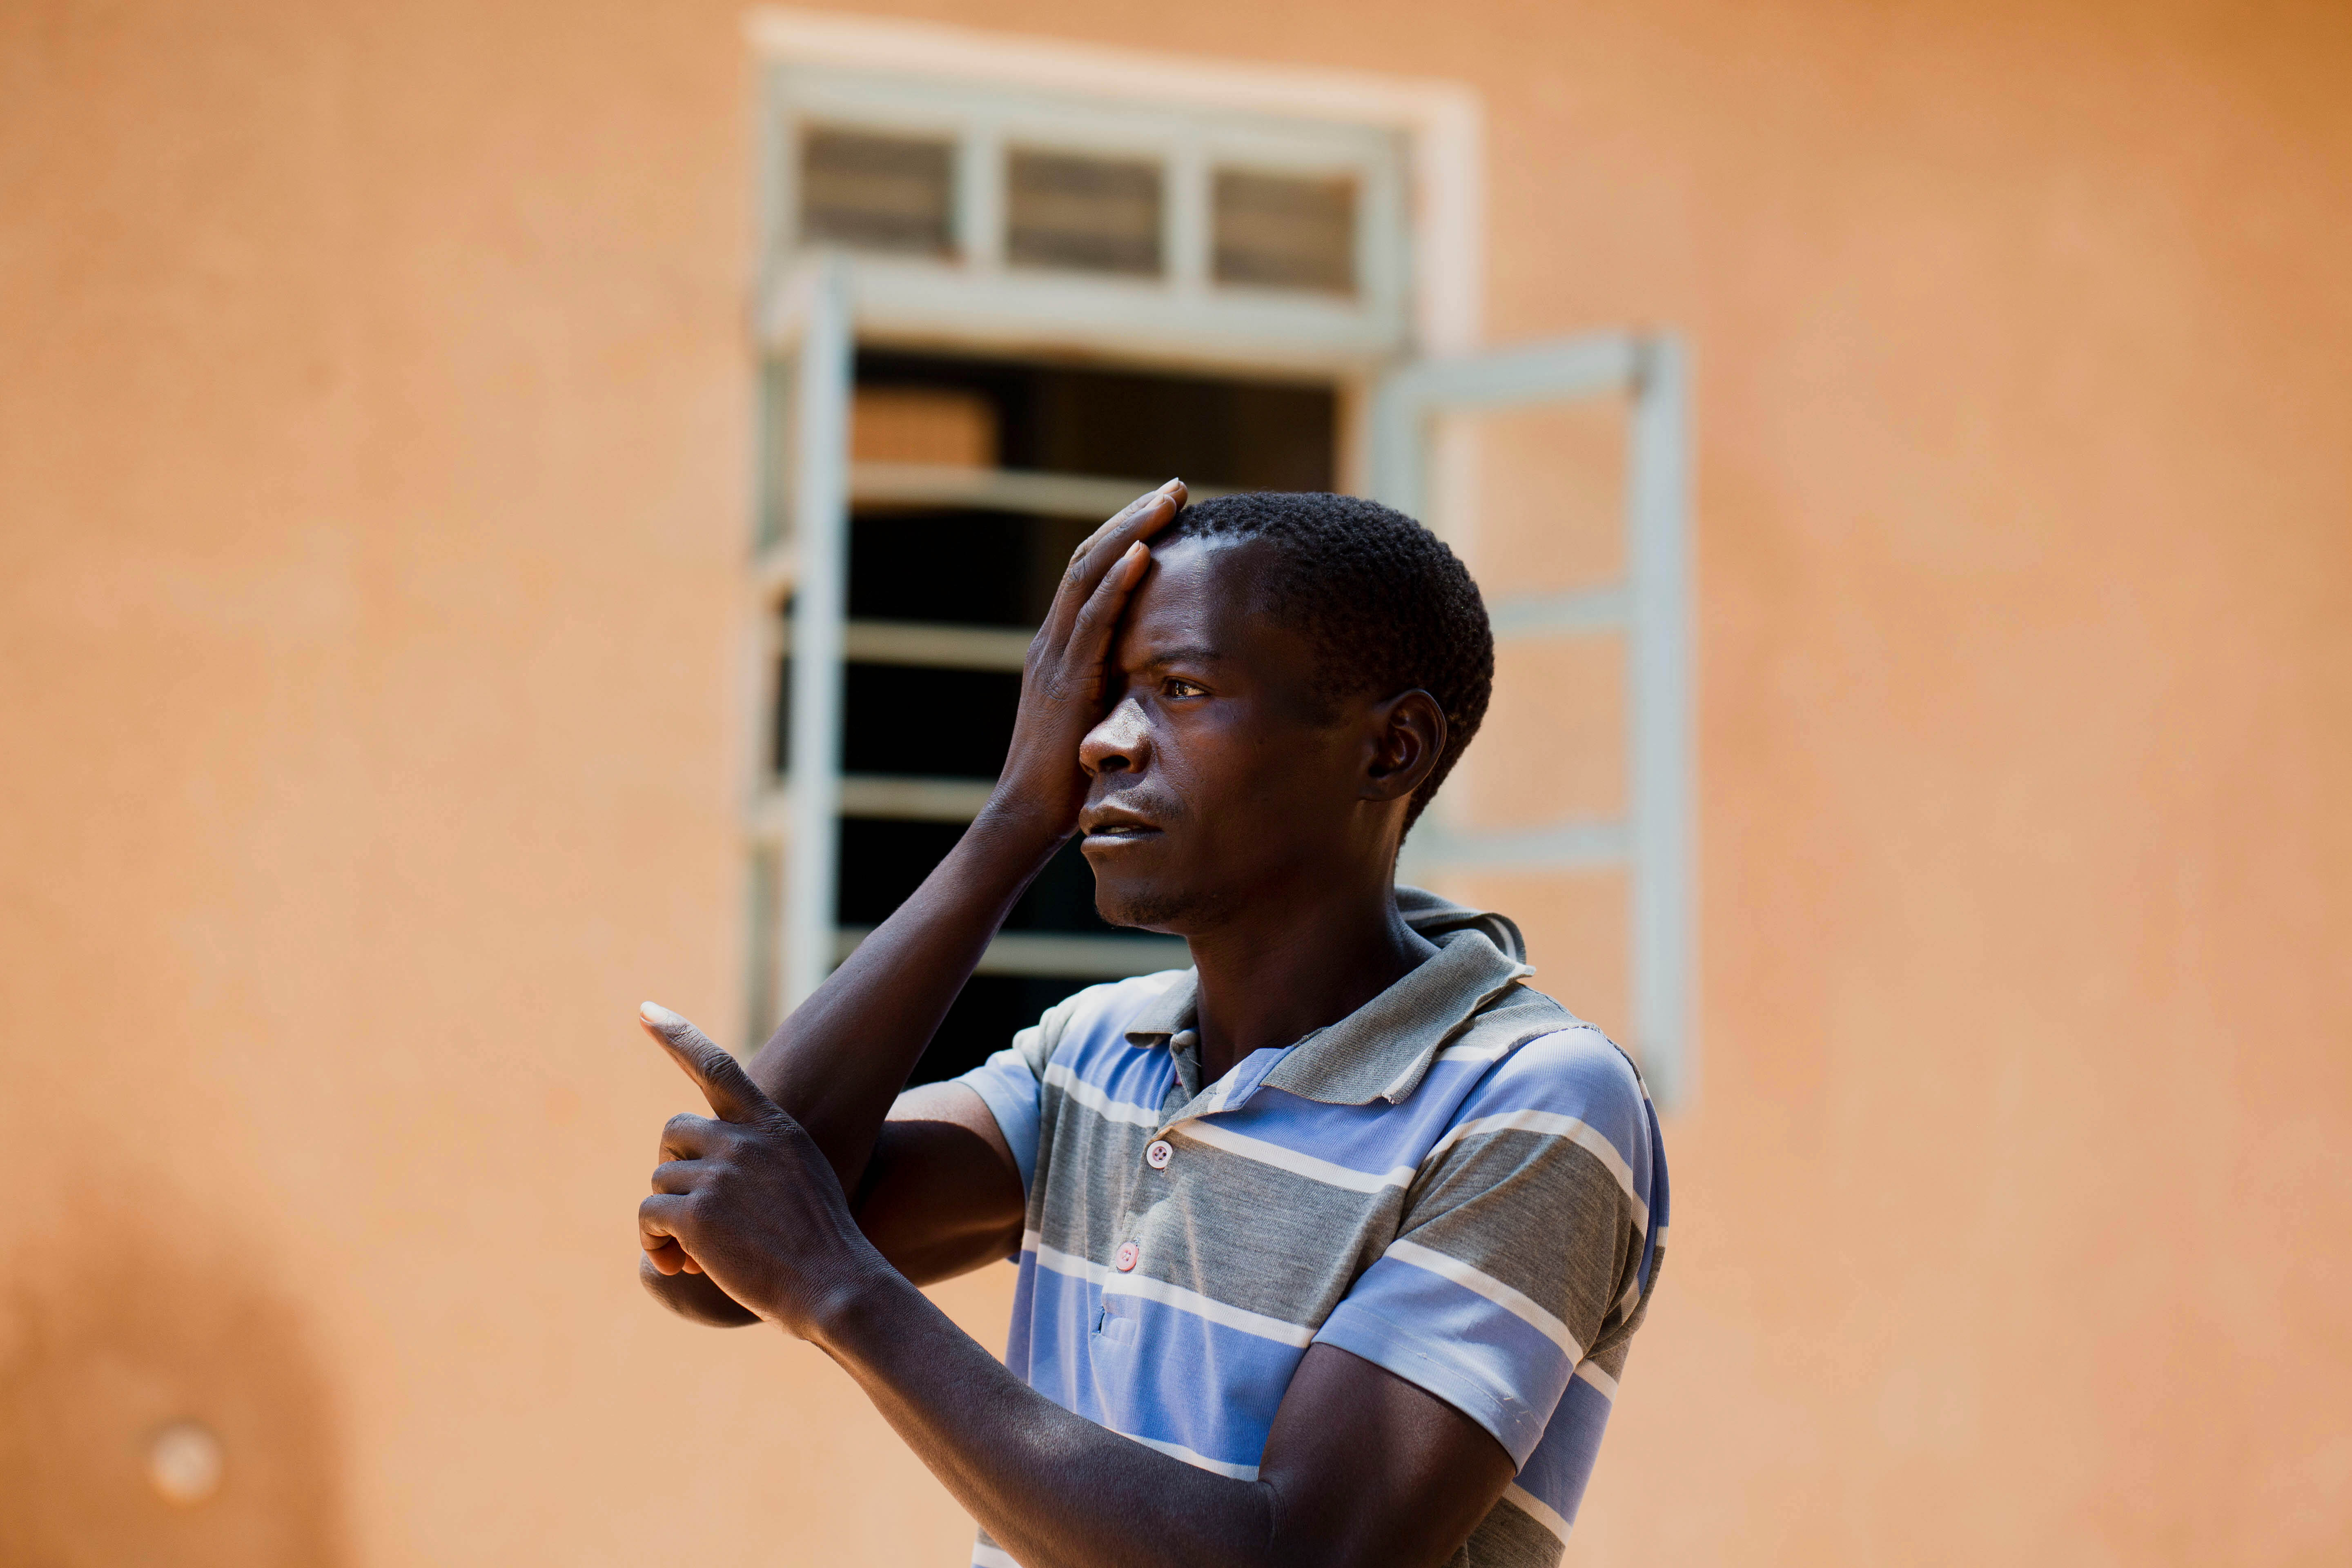 Tanzanian man pointing with eye covered.